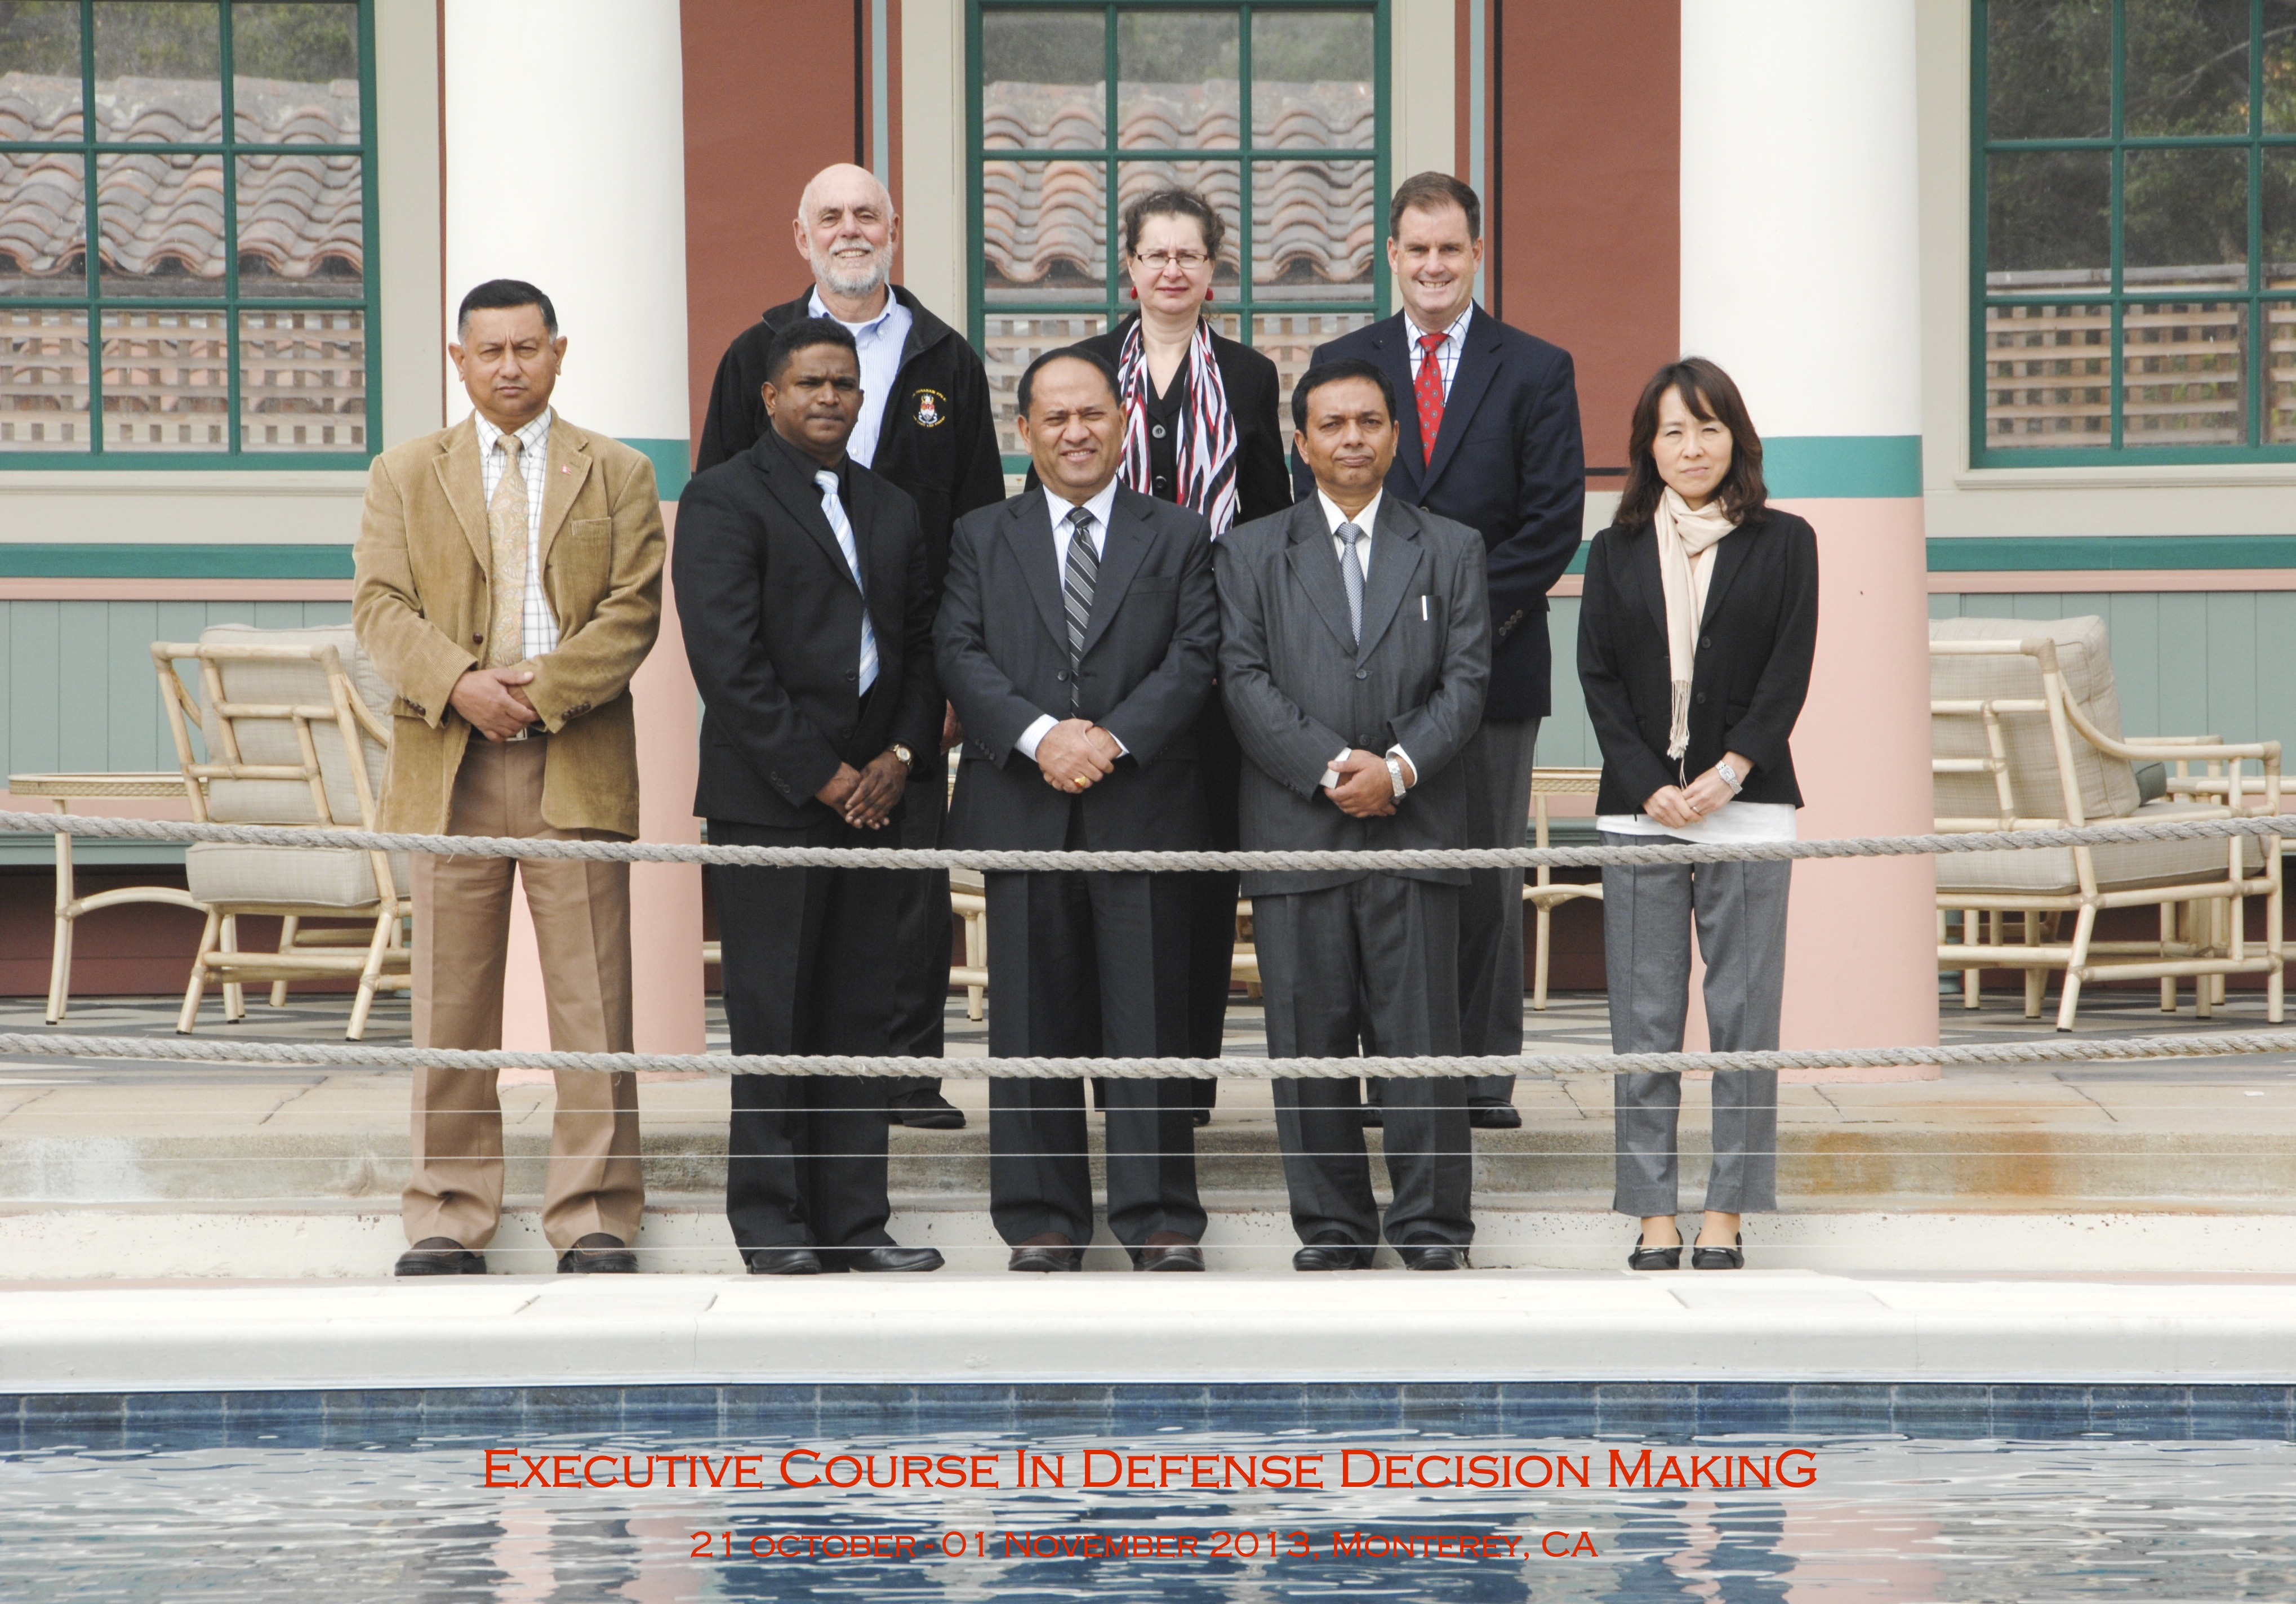 Class photo near the reflecting pool at the Naval Postgraduate School, 2013